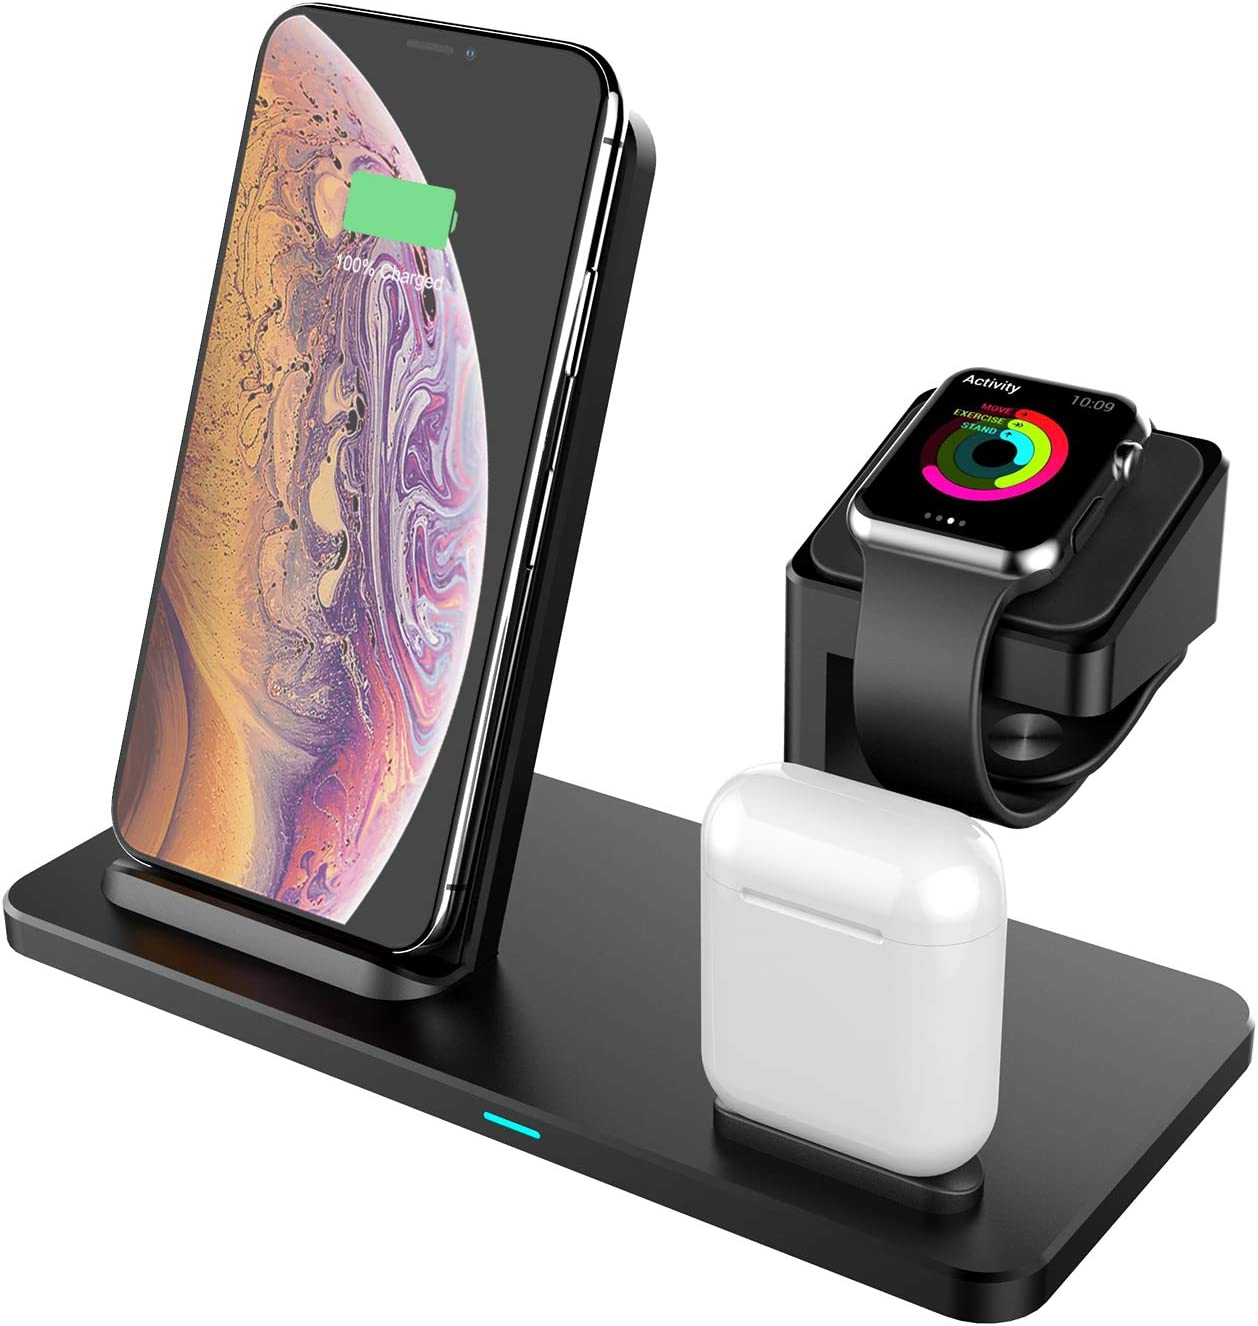 ?MFi Certified? 3 in 1 Charging Dock Station for Apple Watch/Airpods, KZY Fast Wireless Charger Charging Stand for iPhone 11/X/XR/XS/XS MAX/8/8 Plus and All Other Qi Phones-QC3.0 Adapter Included